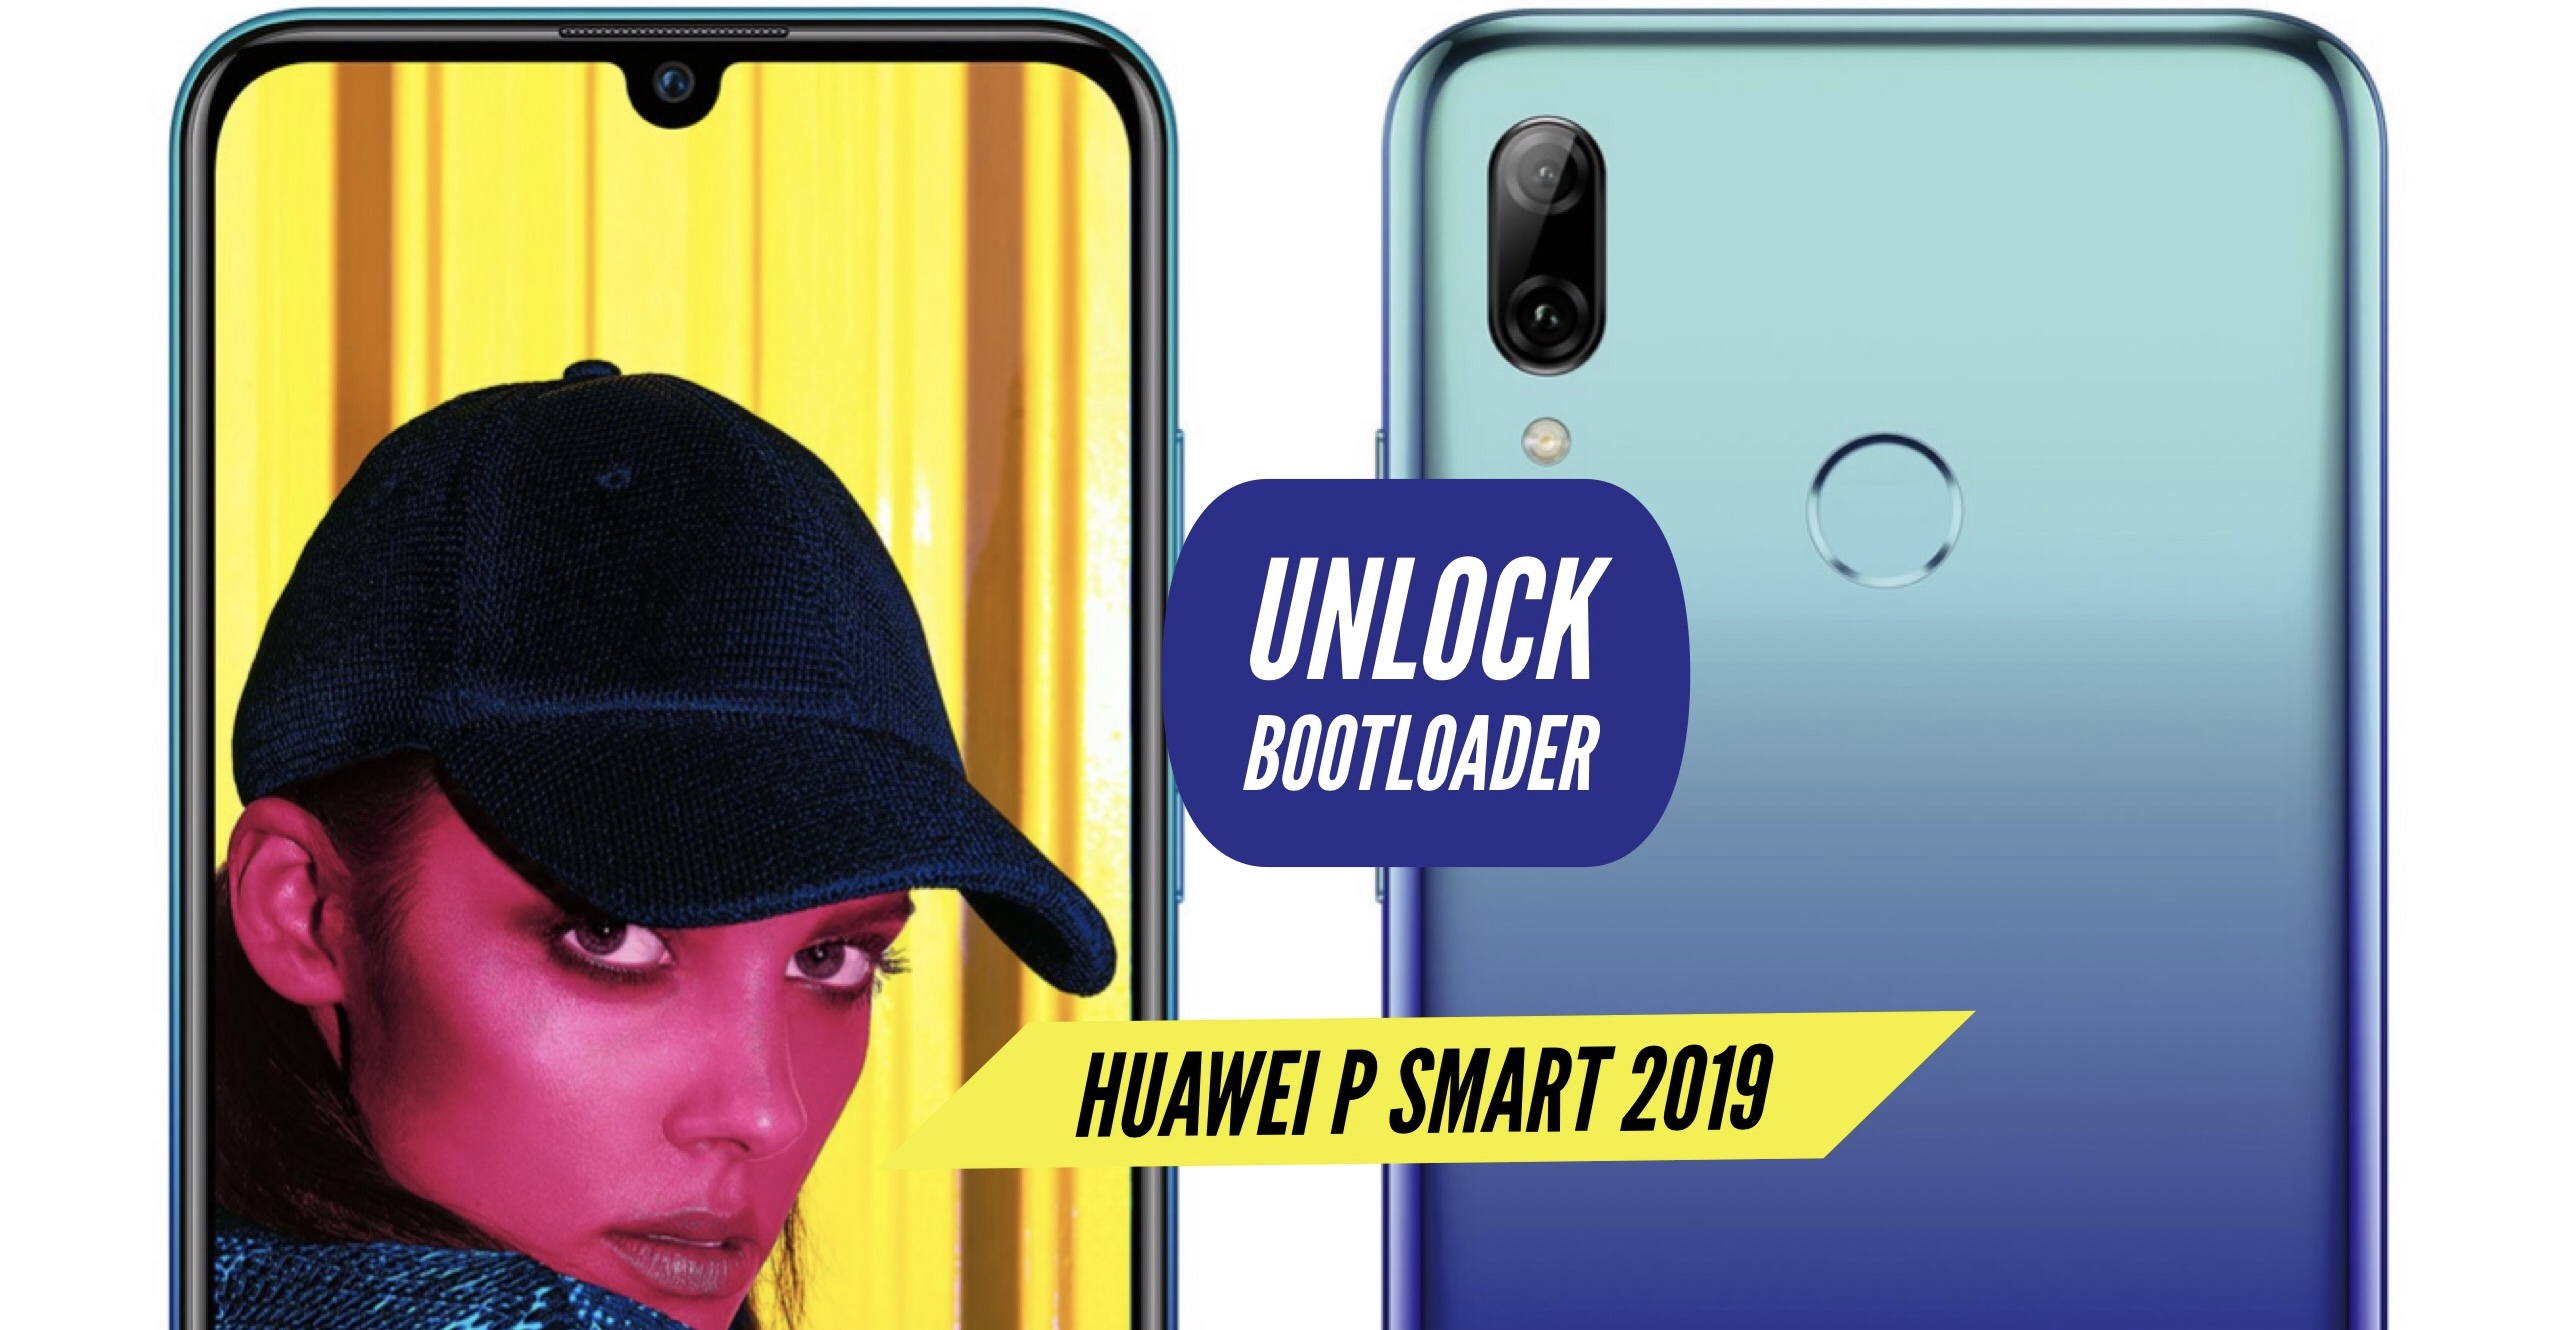 How to Unlock Bootloader on Huawei P Smart 2019?